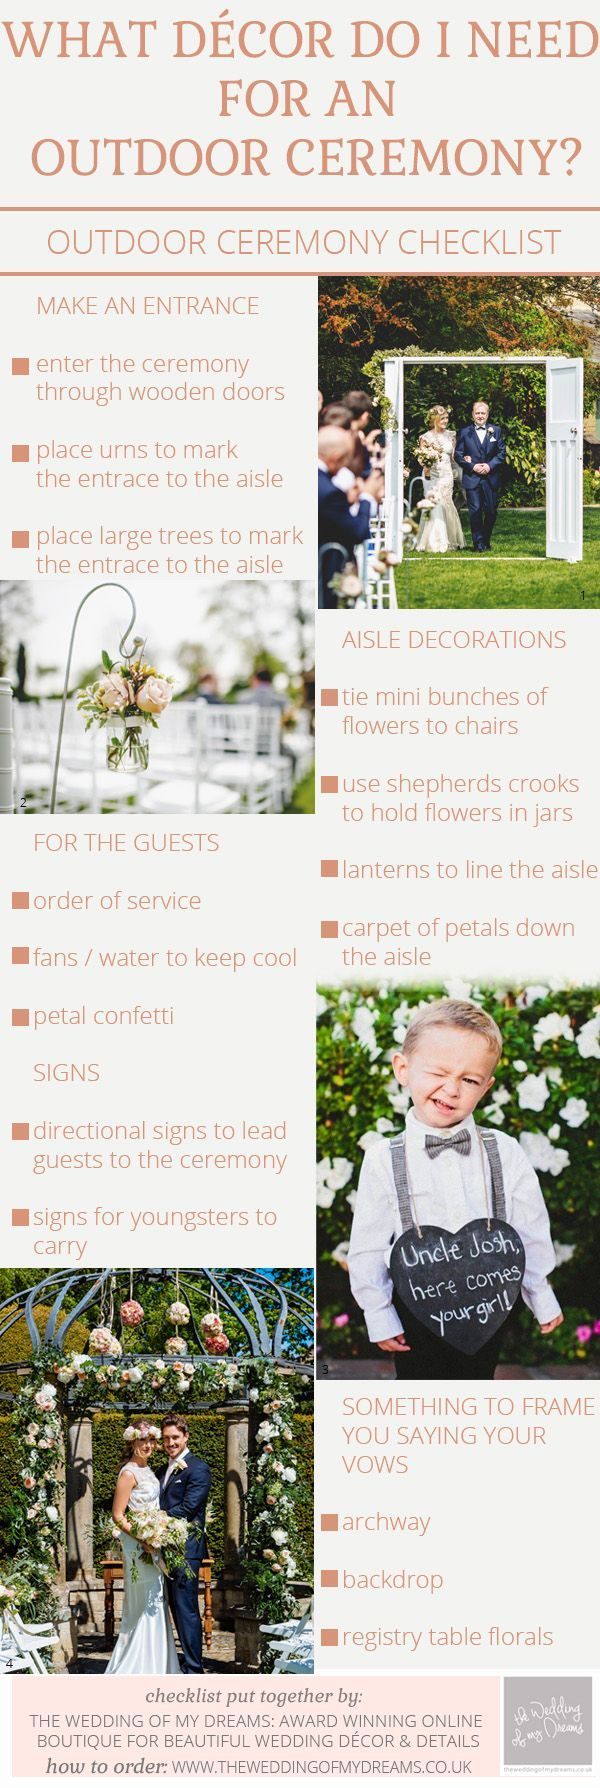 Outdoor Wedding Ceremony Decorations – Checklist / http://www.deerpearlflowers.com/rustic-beach-outdoor-wedding-checklist/